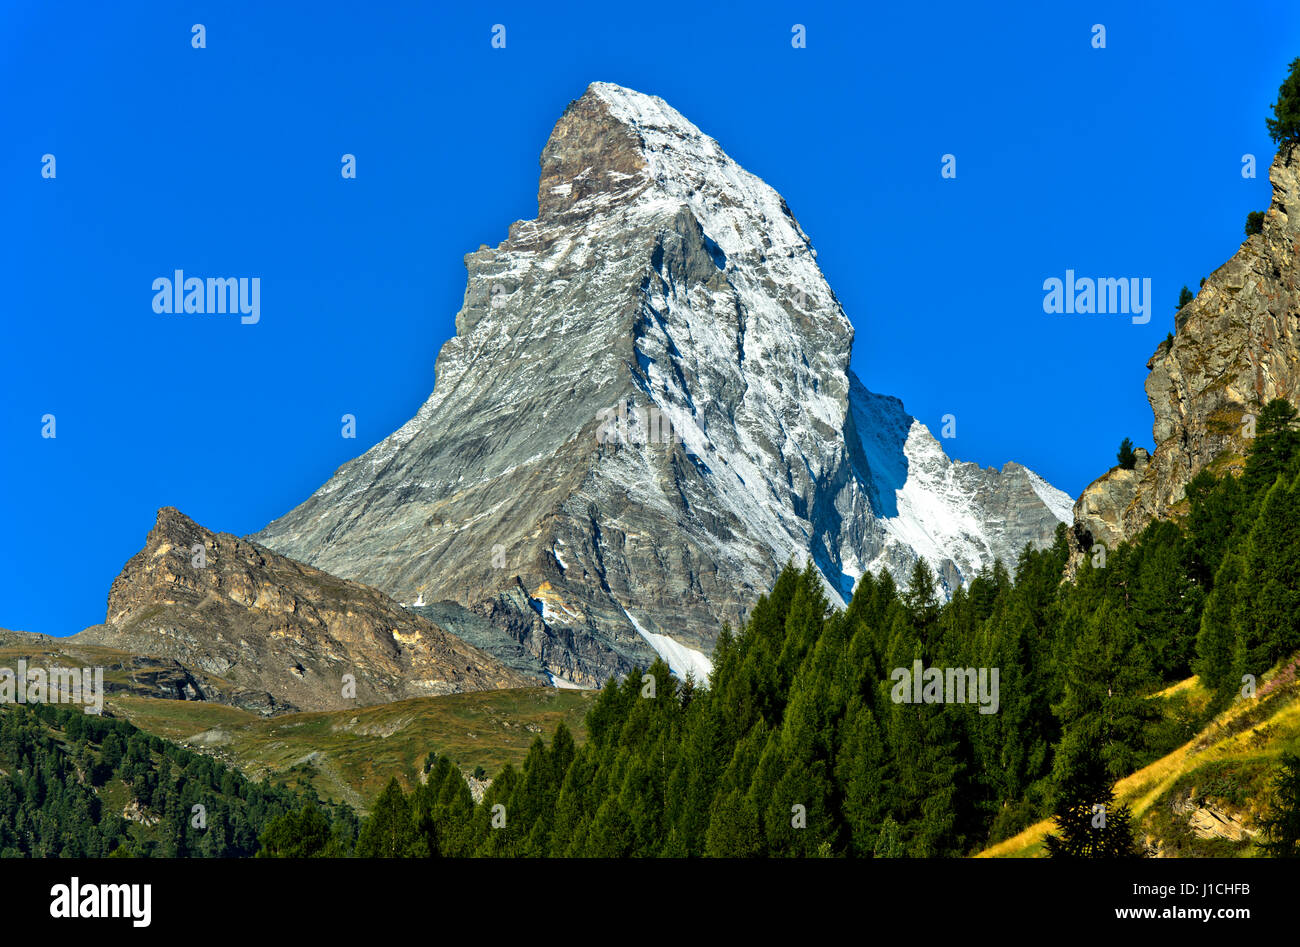 Matterhorn seen from Zermatt, Valais, Switzerland - Stock Image